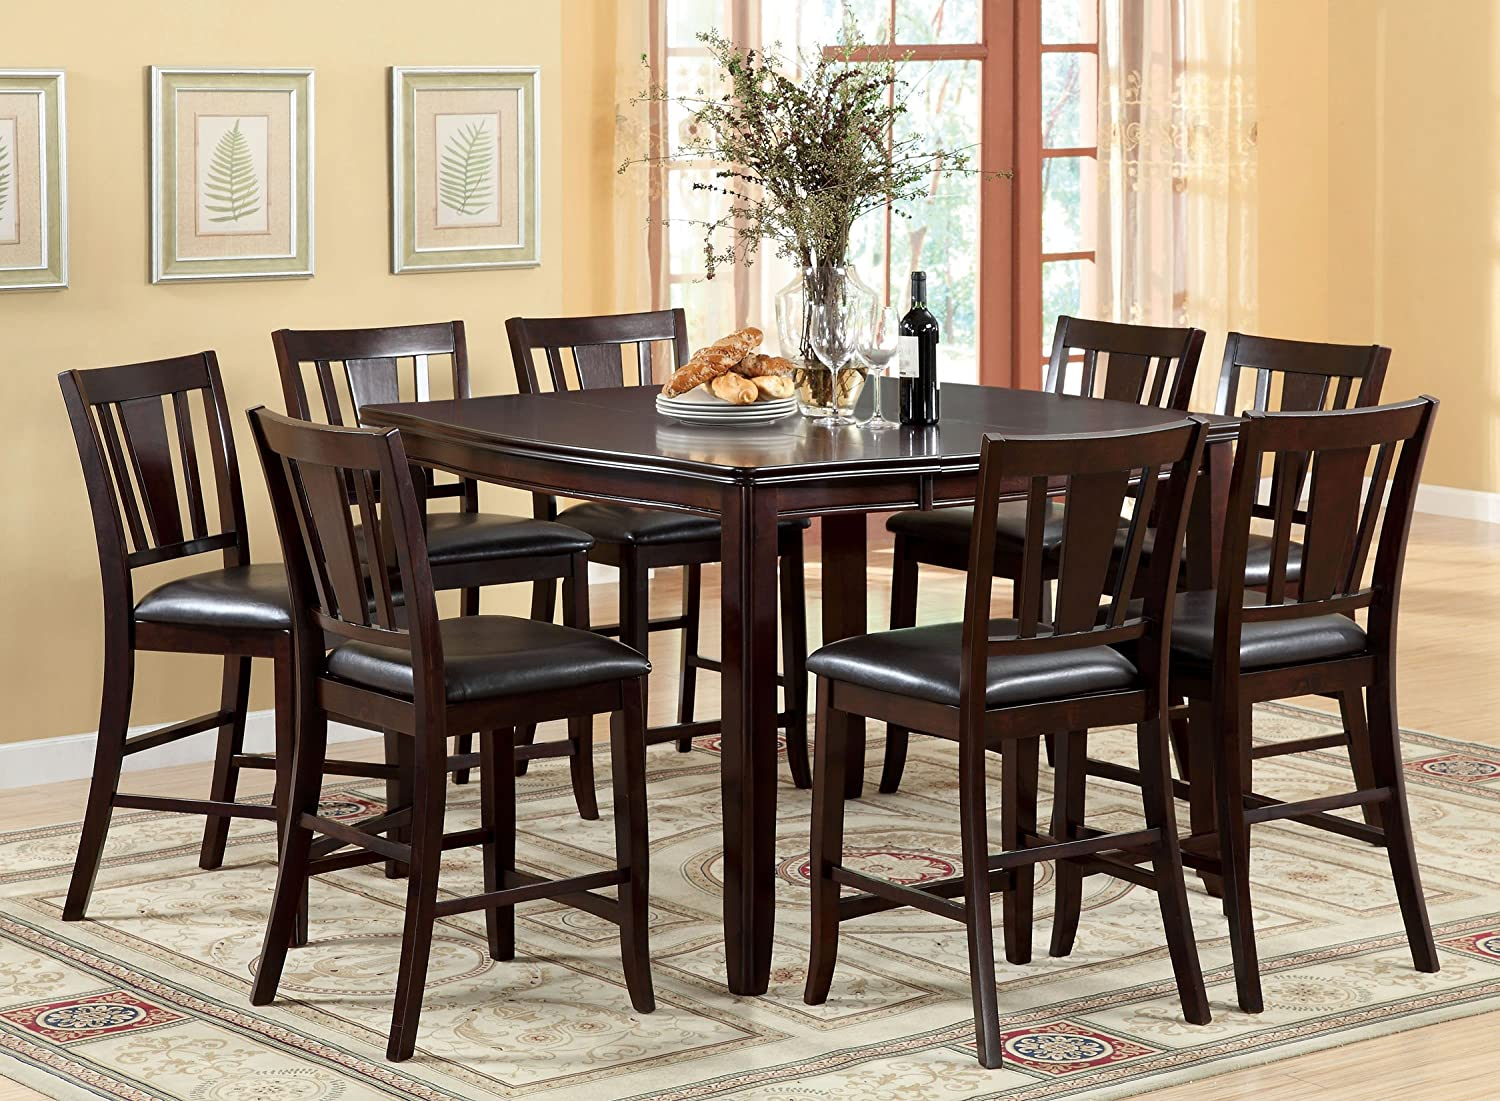 Terrific Furniture Of America Anlow Counter Height Table With 16 Inch Expandable Leaf Espresso Finish Short Links Chair Design For Home Short Linksinfo